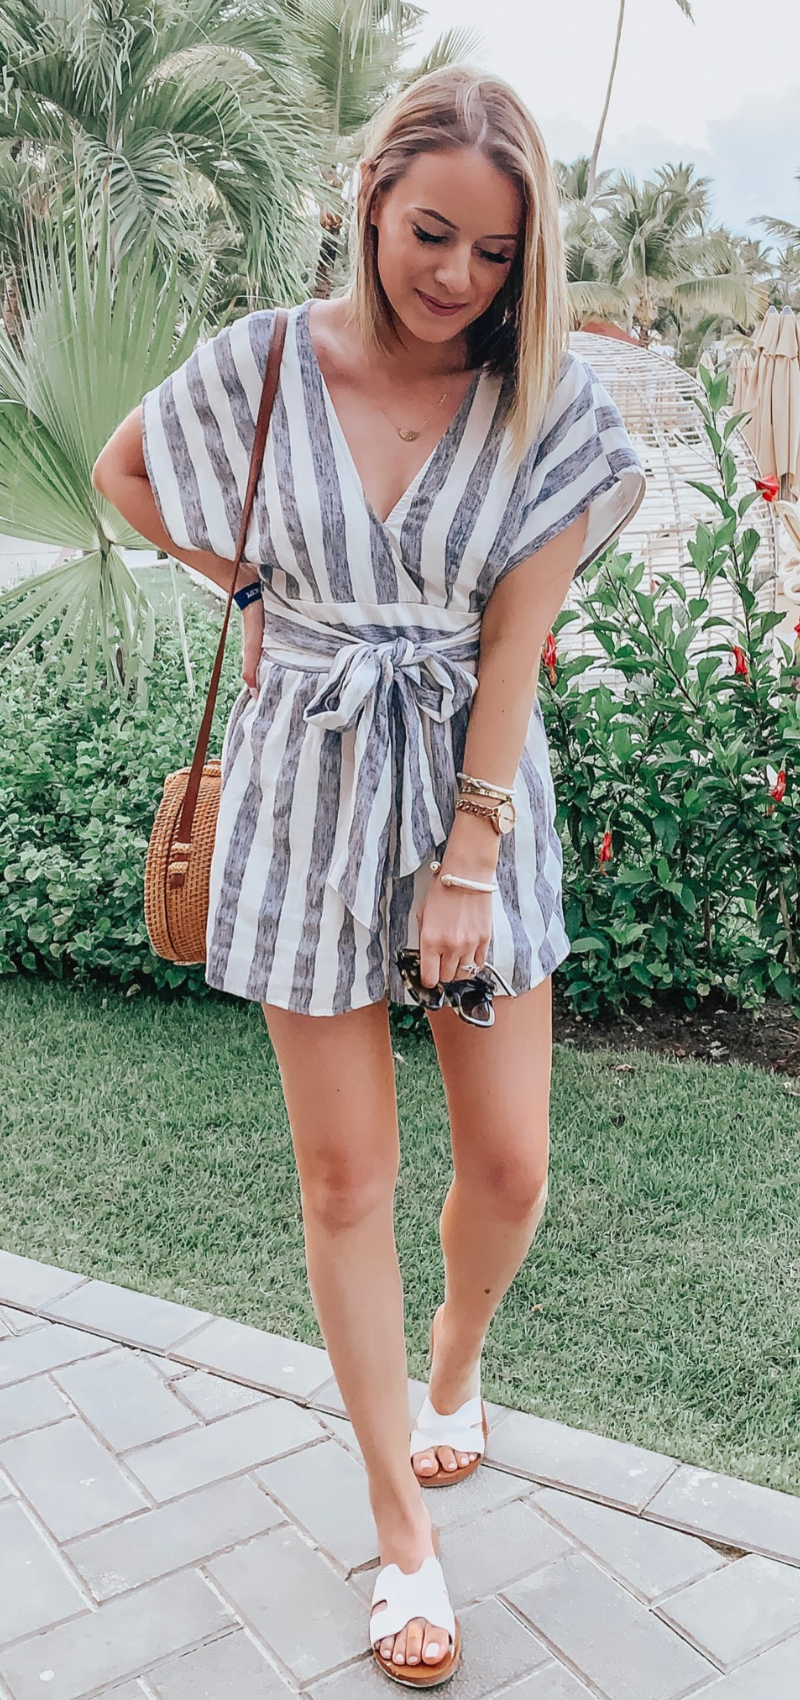 15+ Affordable Vacation Outfits #vacationoutfits